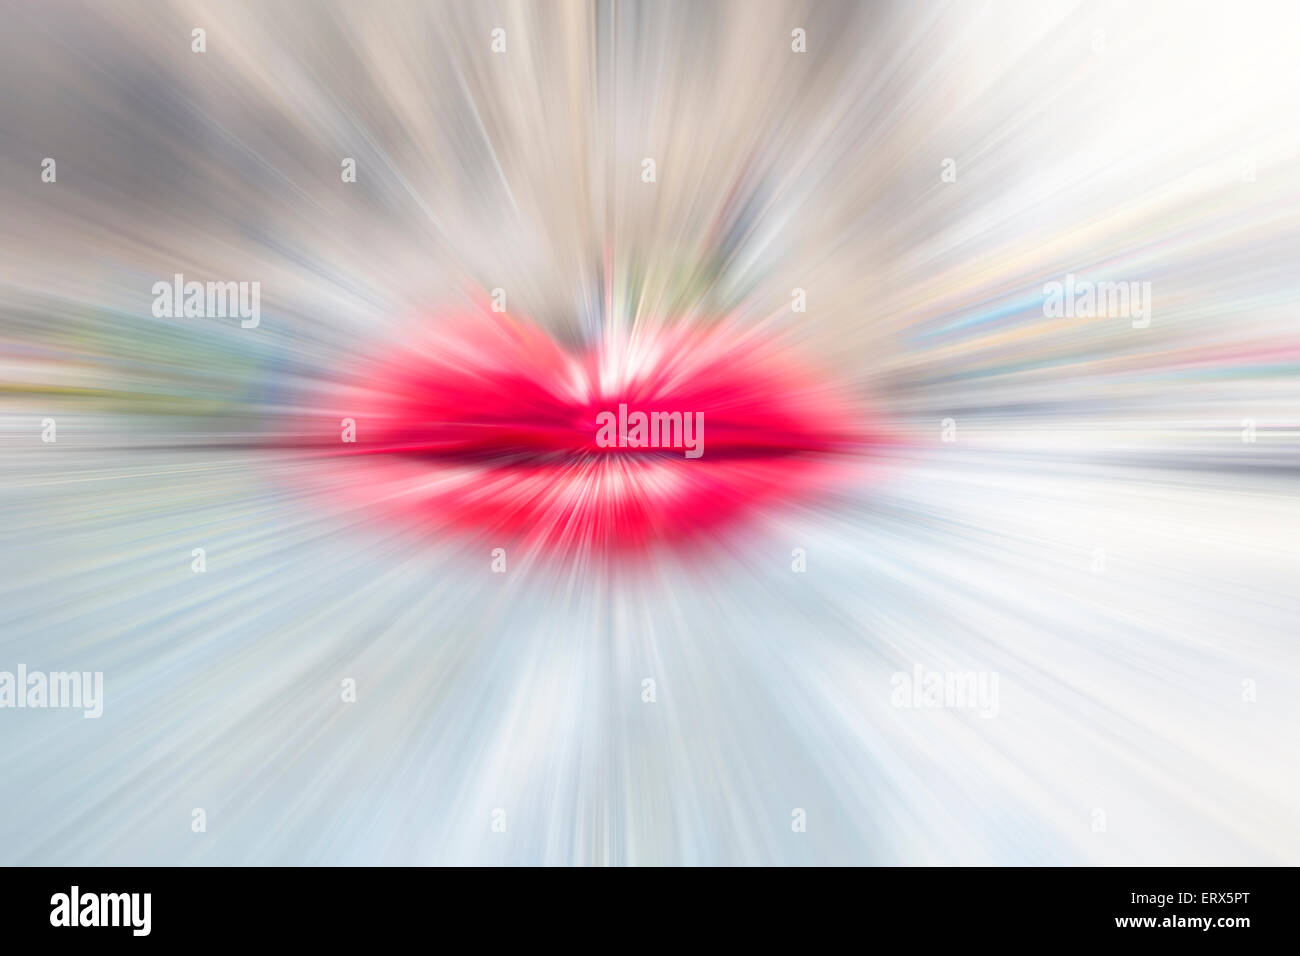 Motion blurred lips, abstract background. - Stock Image